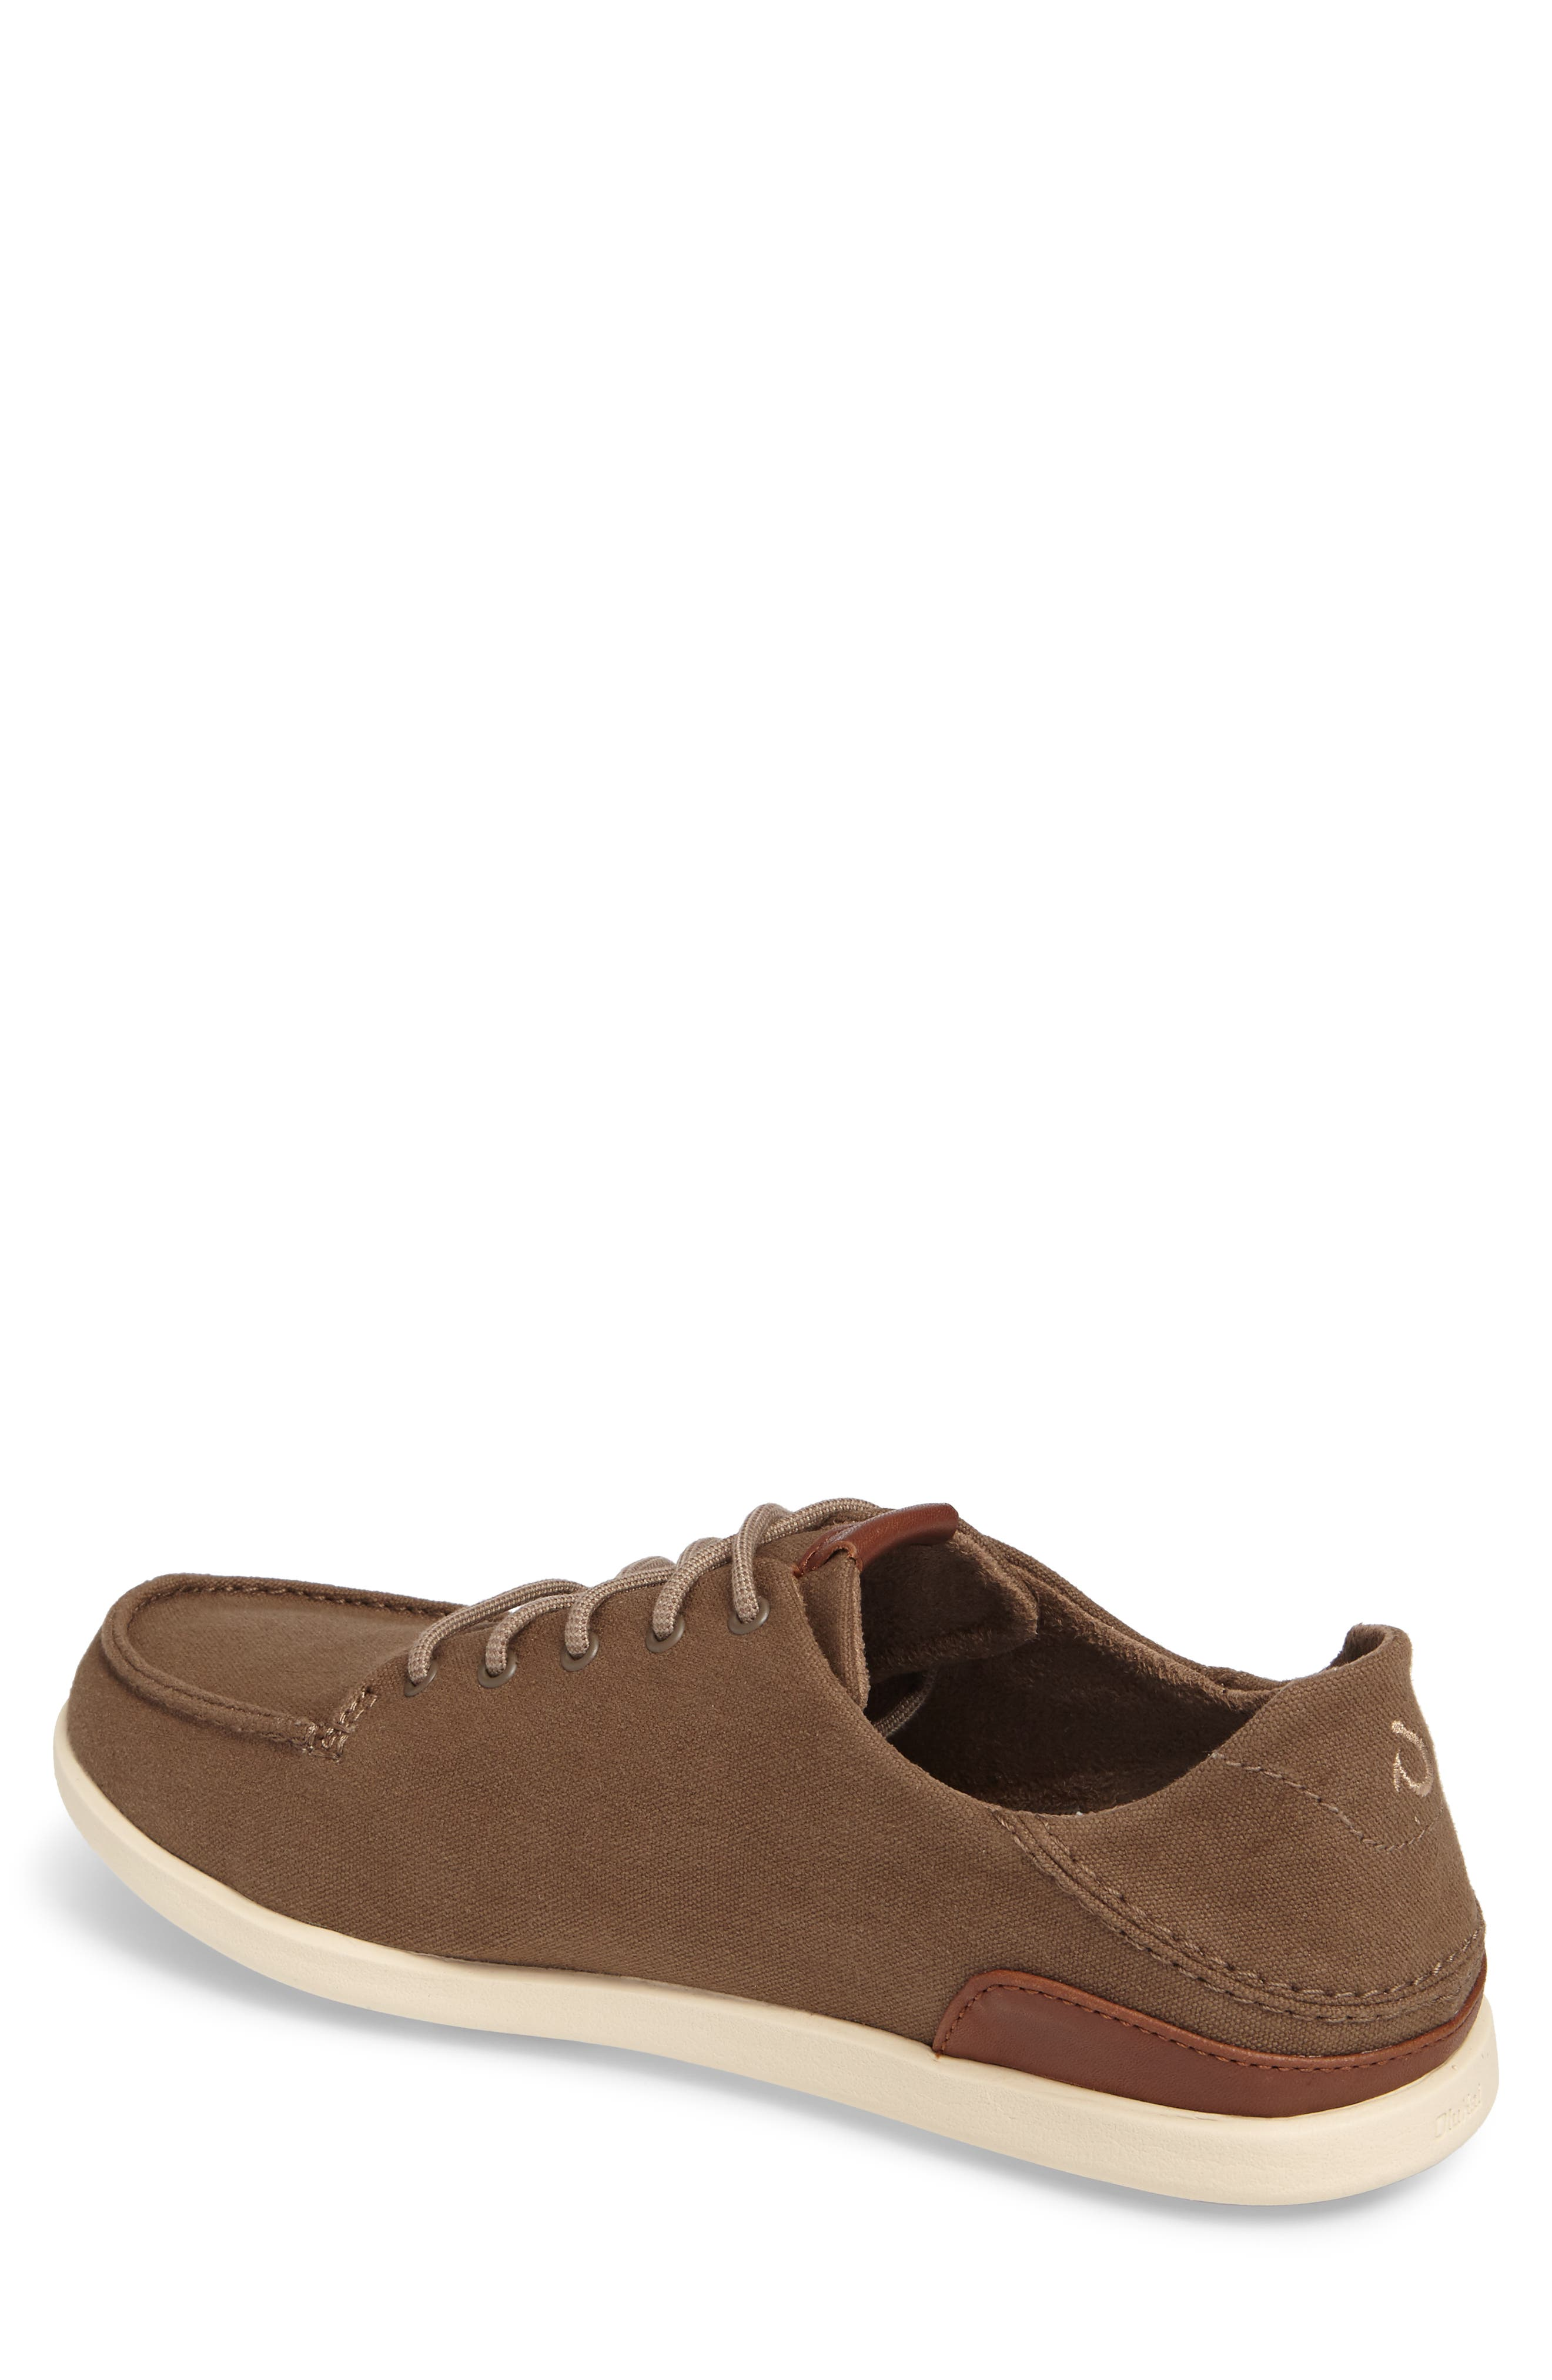 Manoa Sneaker,                             Alternate thumbnail 2, color,                             MUSTANG/ TOFFEE